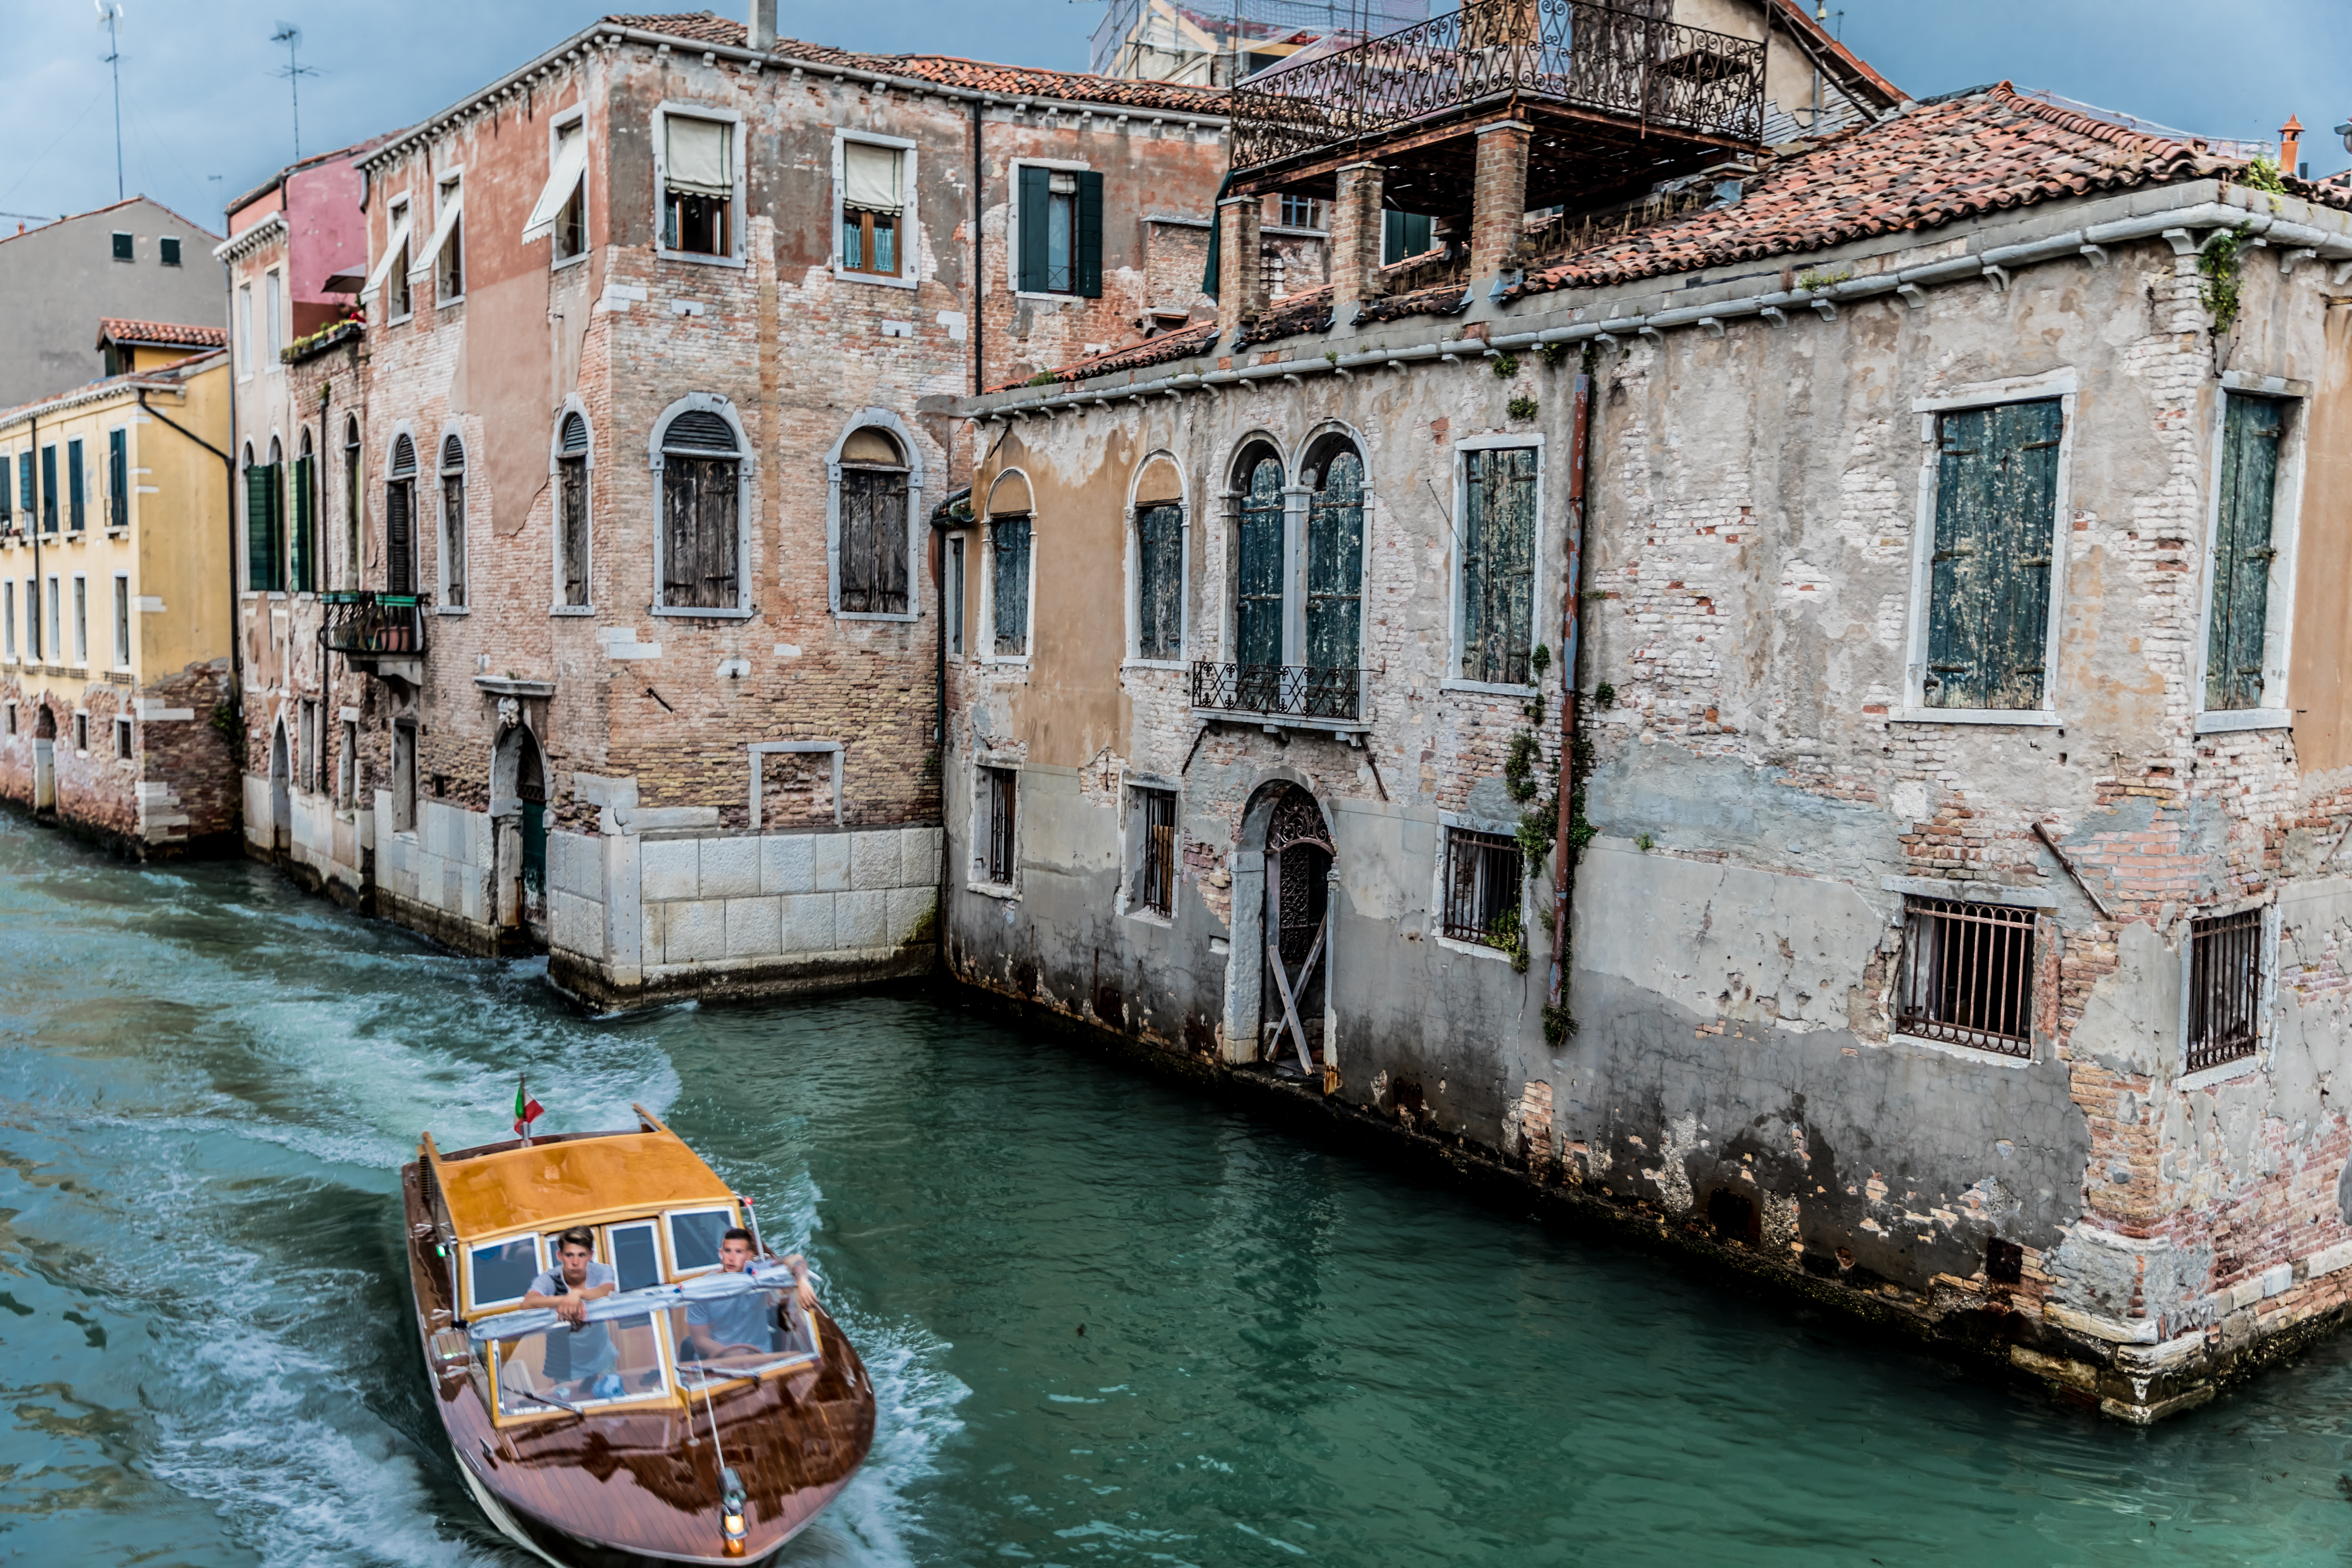 santa-croce-venice-canal-dilapidated-buildings-italy